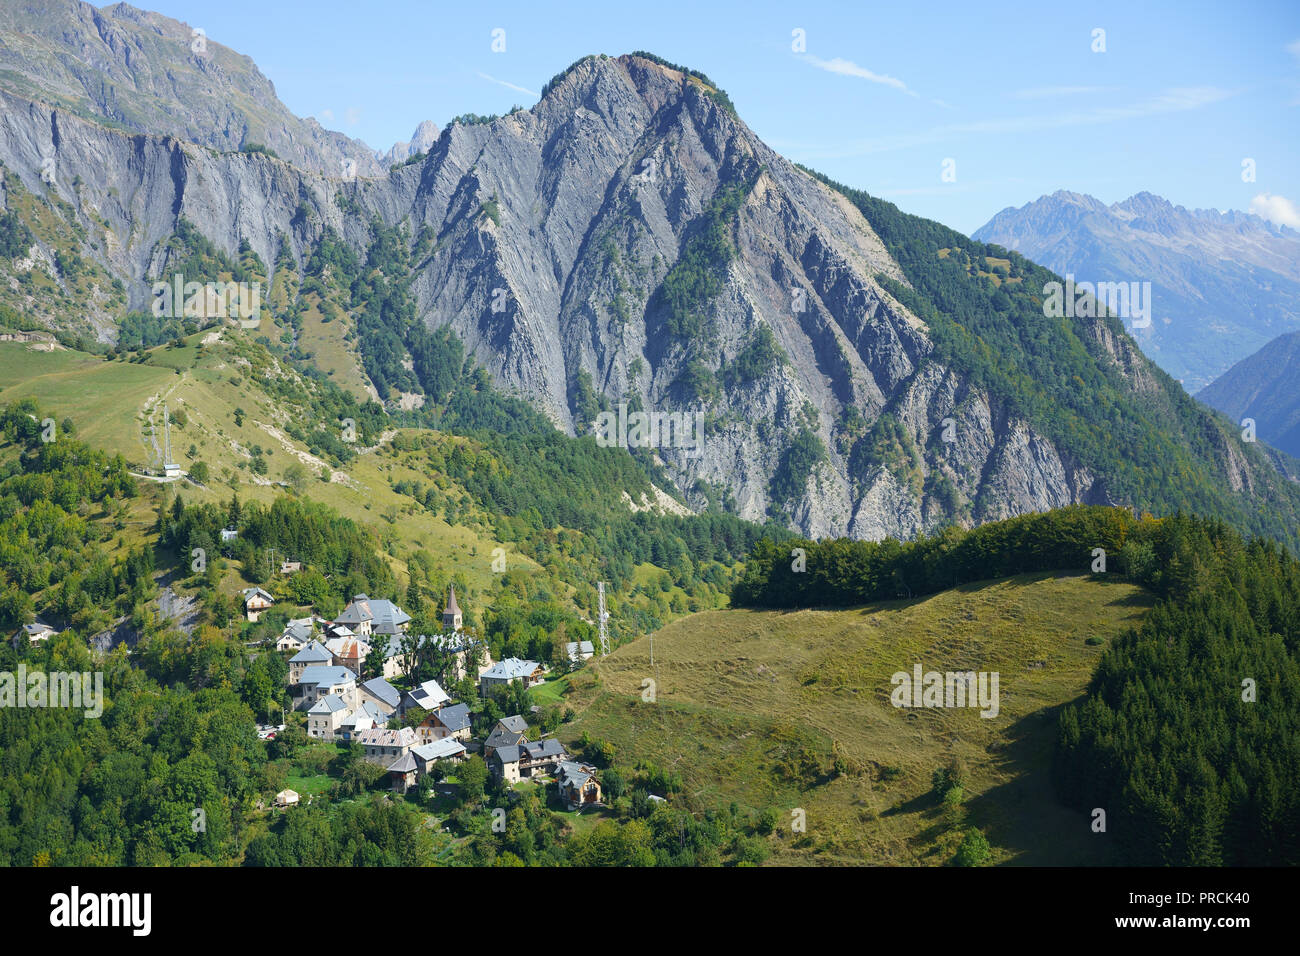 SMALL VILLAGE OF ORNON IN A RUGGED MOUNTAINOUS LANDSCAPE (aerial view). Auvergne-Rhone-Alpes, France. - Stock Image